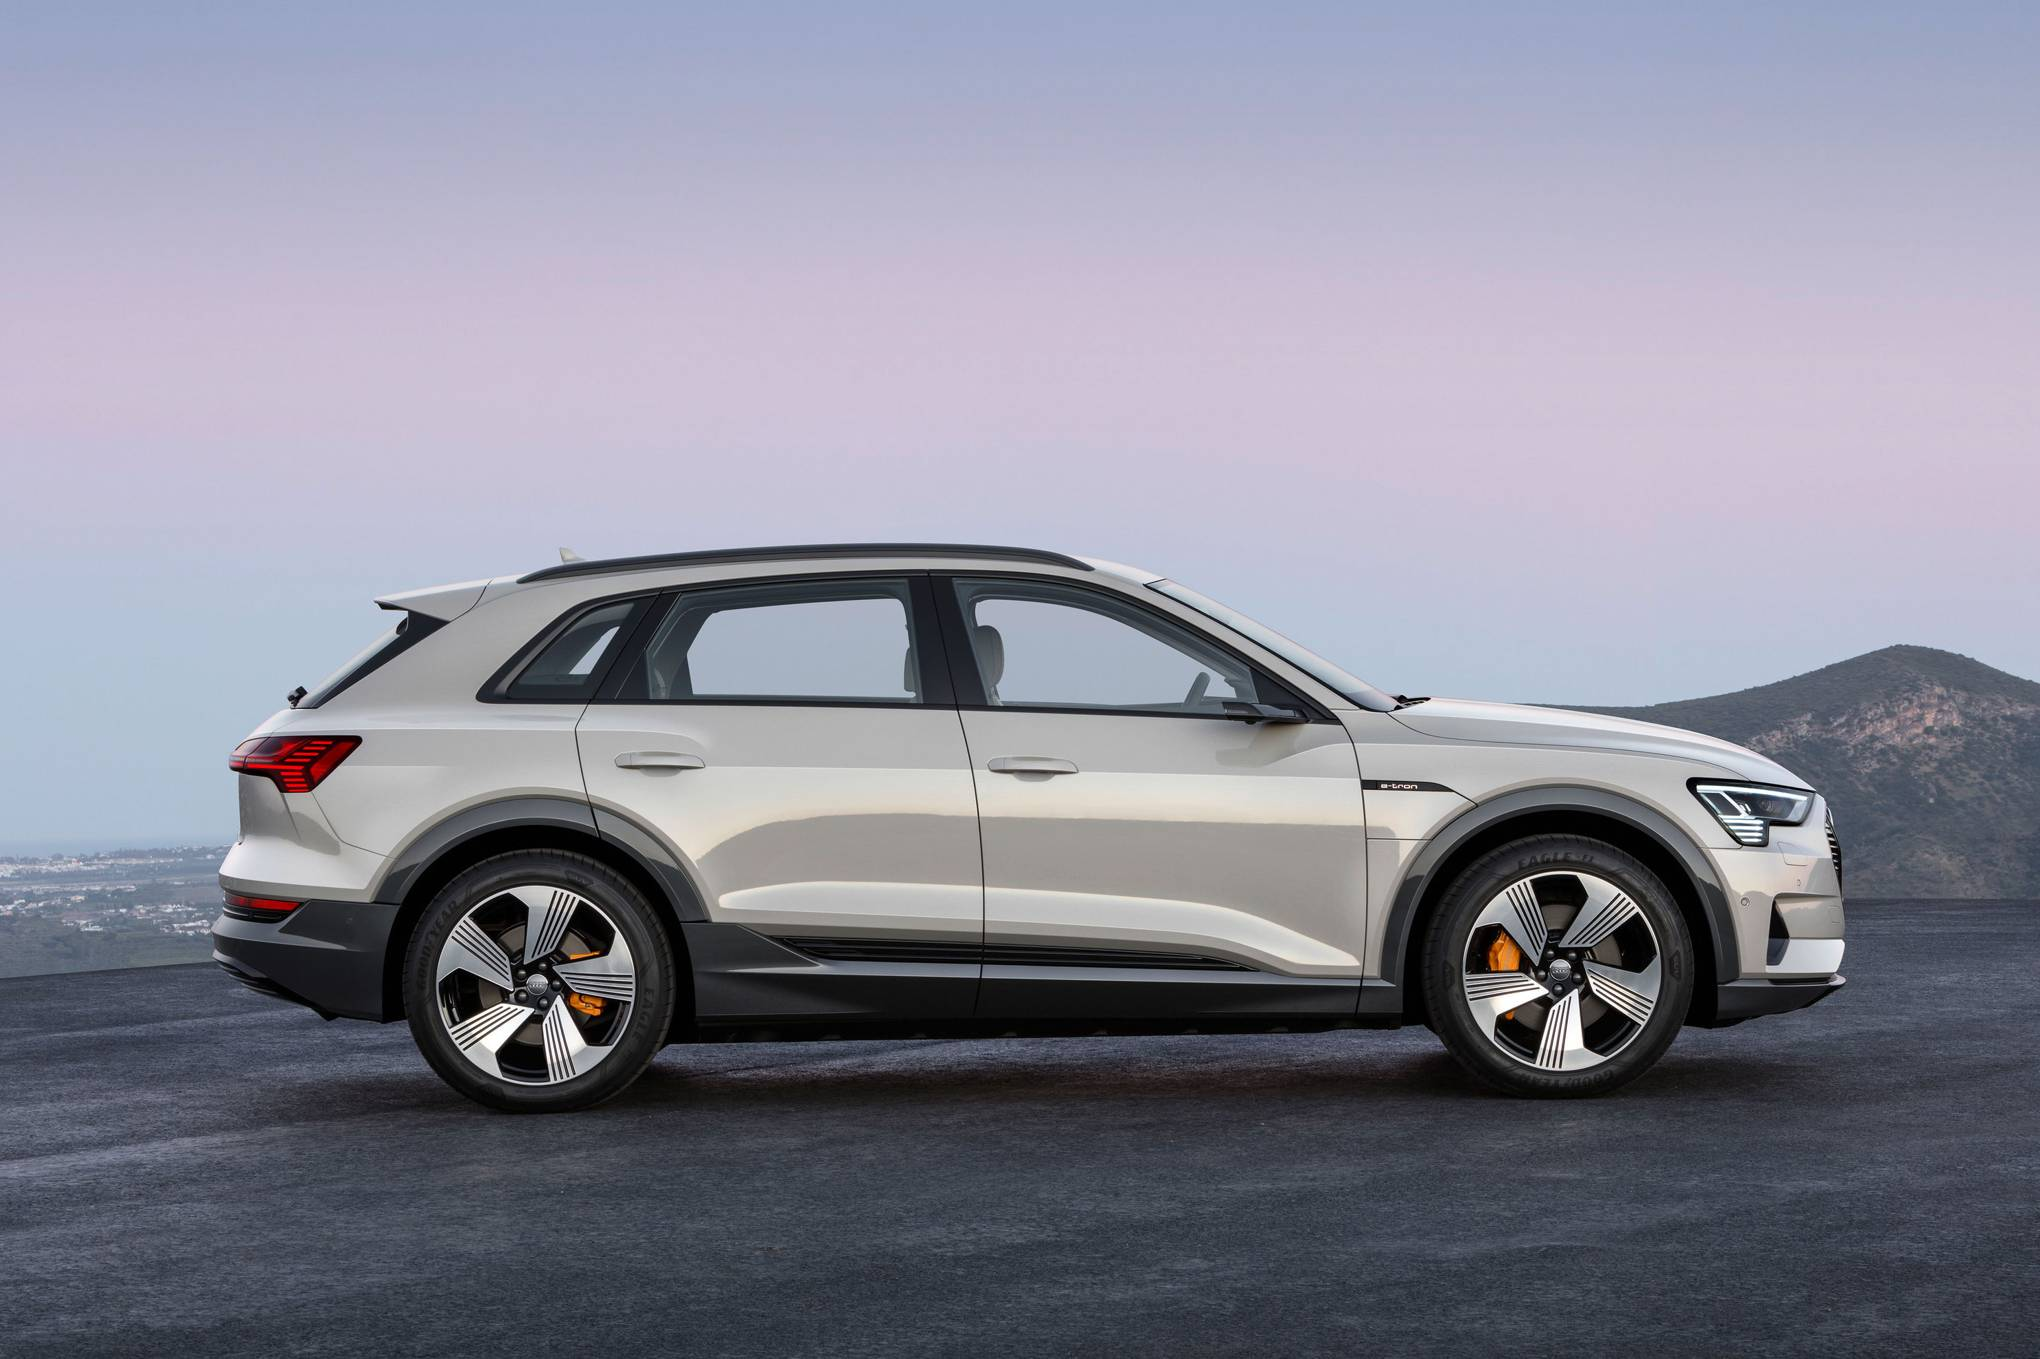 Audi E Tron Review A Slick Smooth Tesla Beating Electric Suv Wired Uk